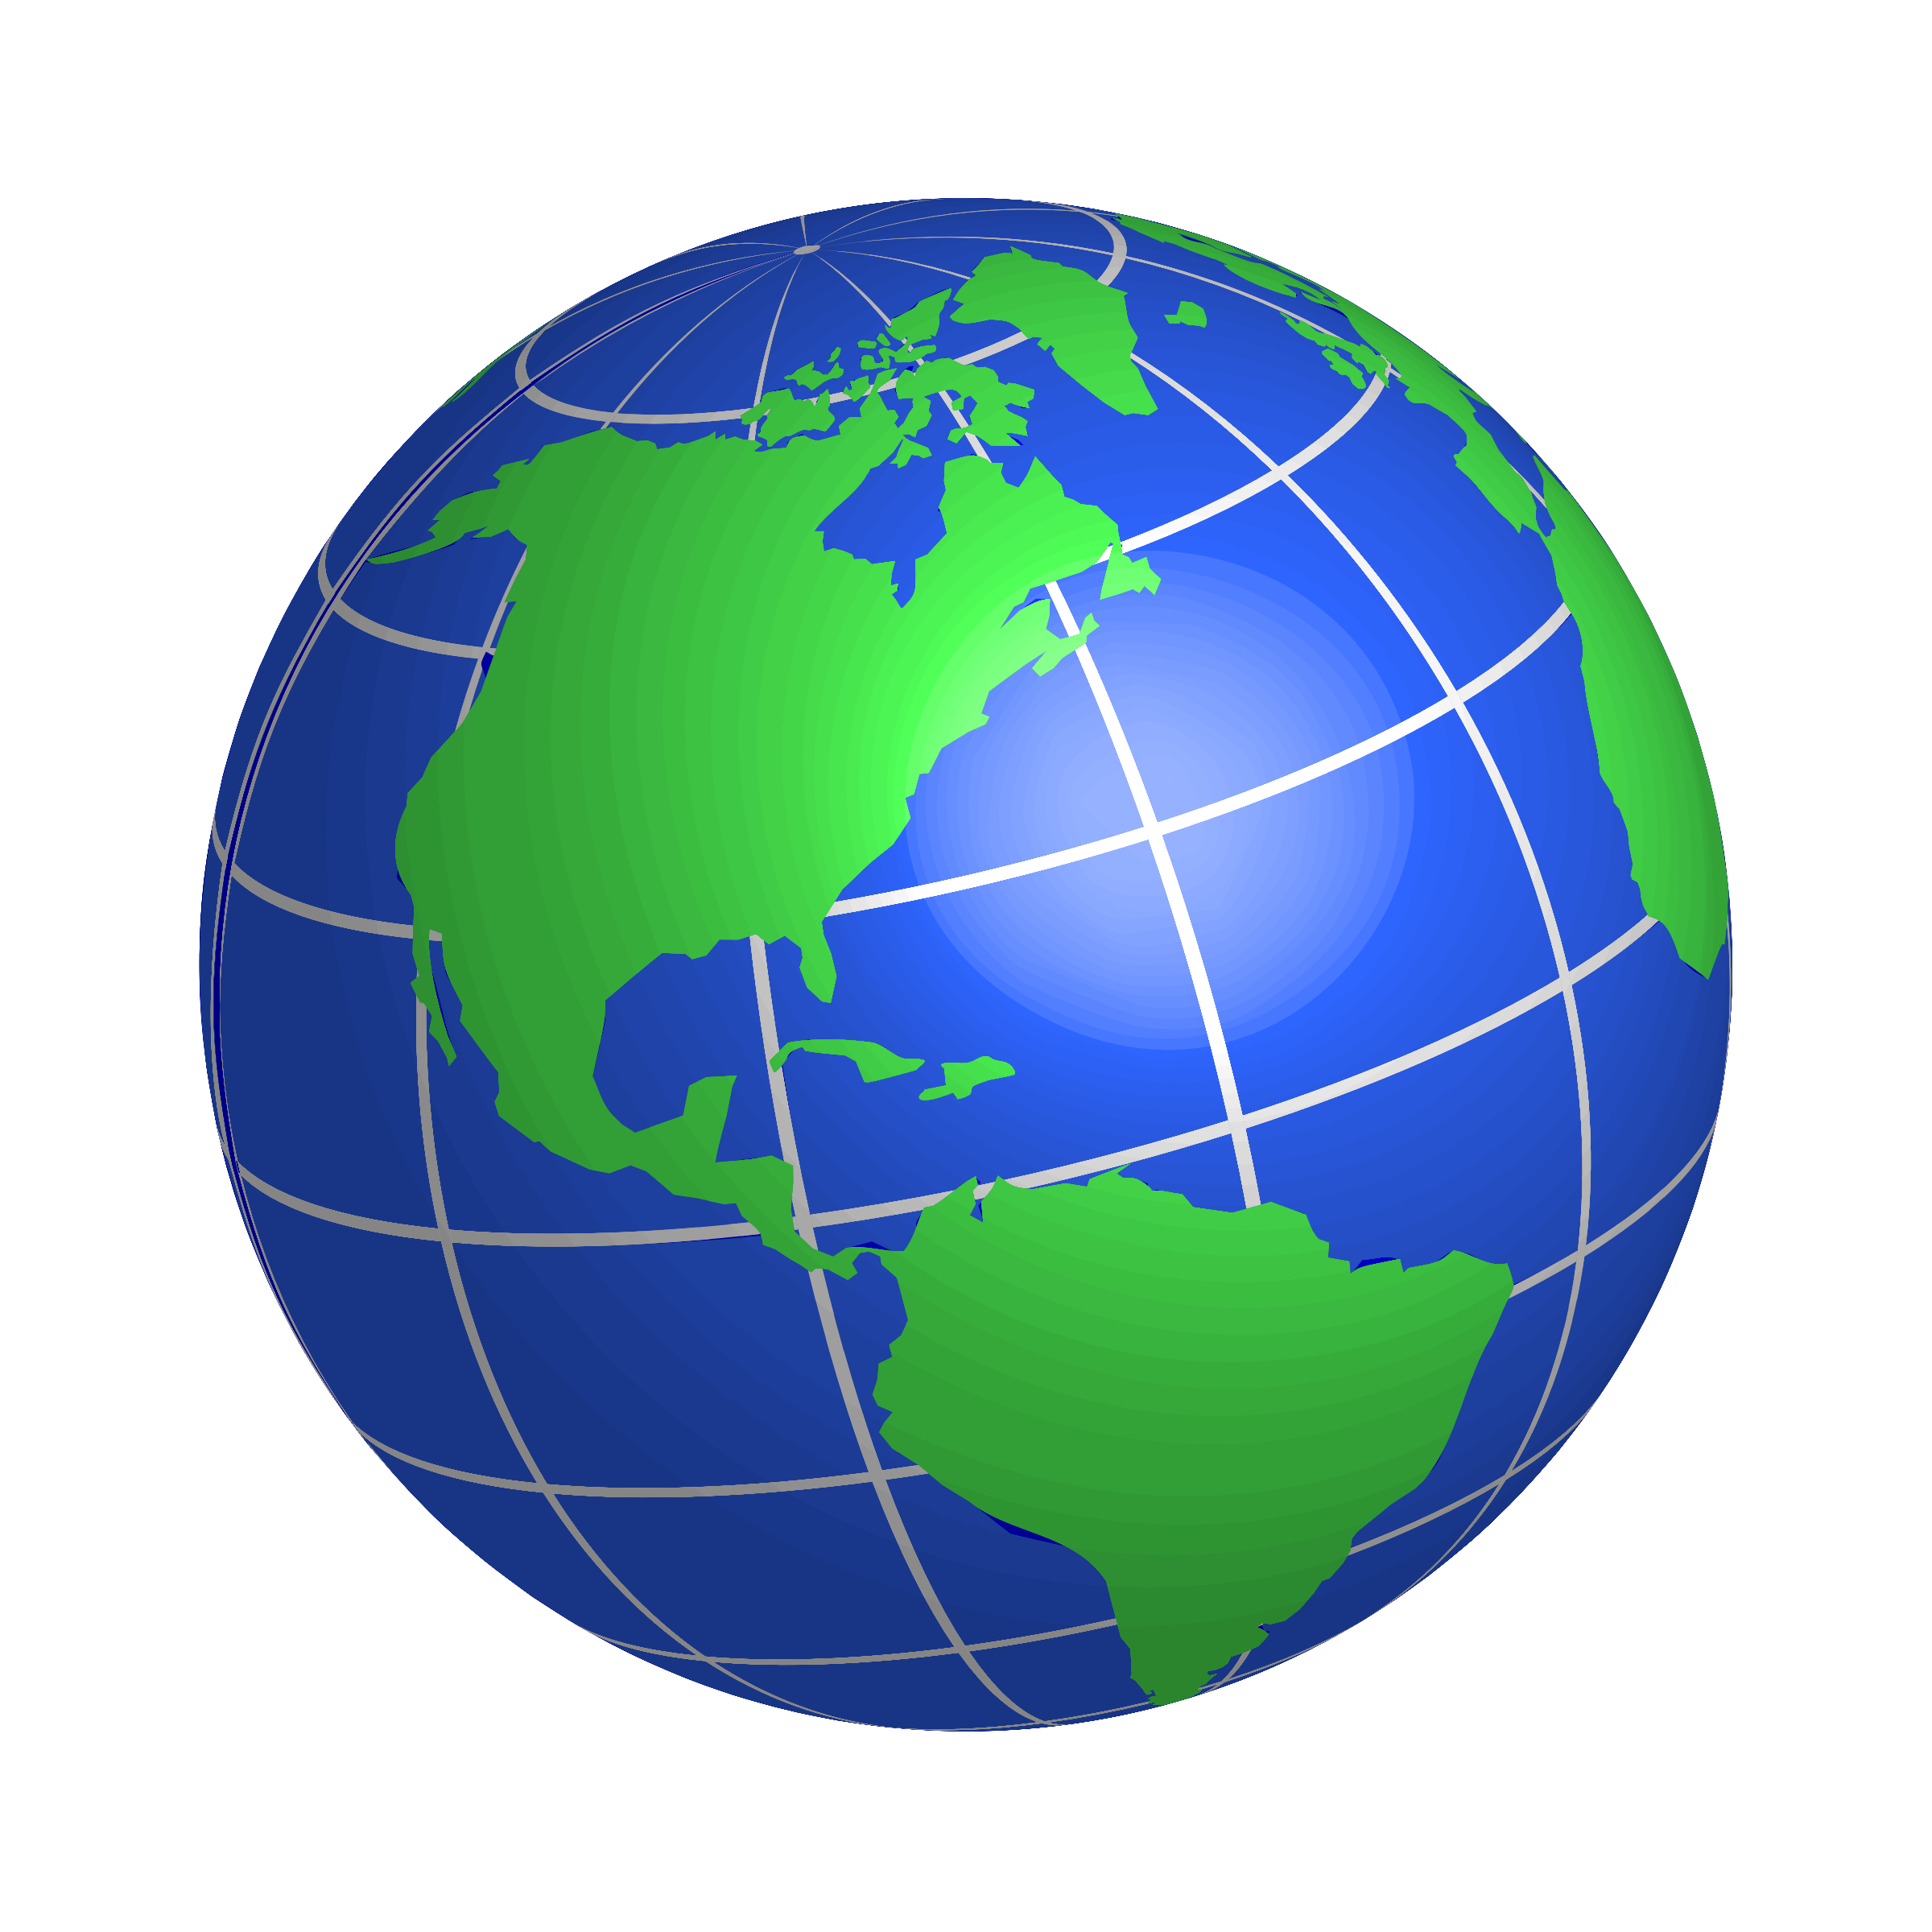 2400x2400 Globe Clipart Free Images 3